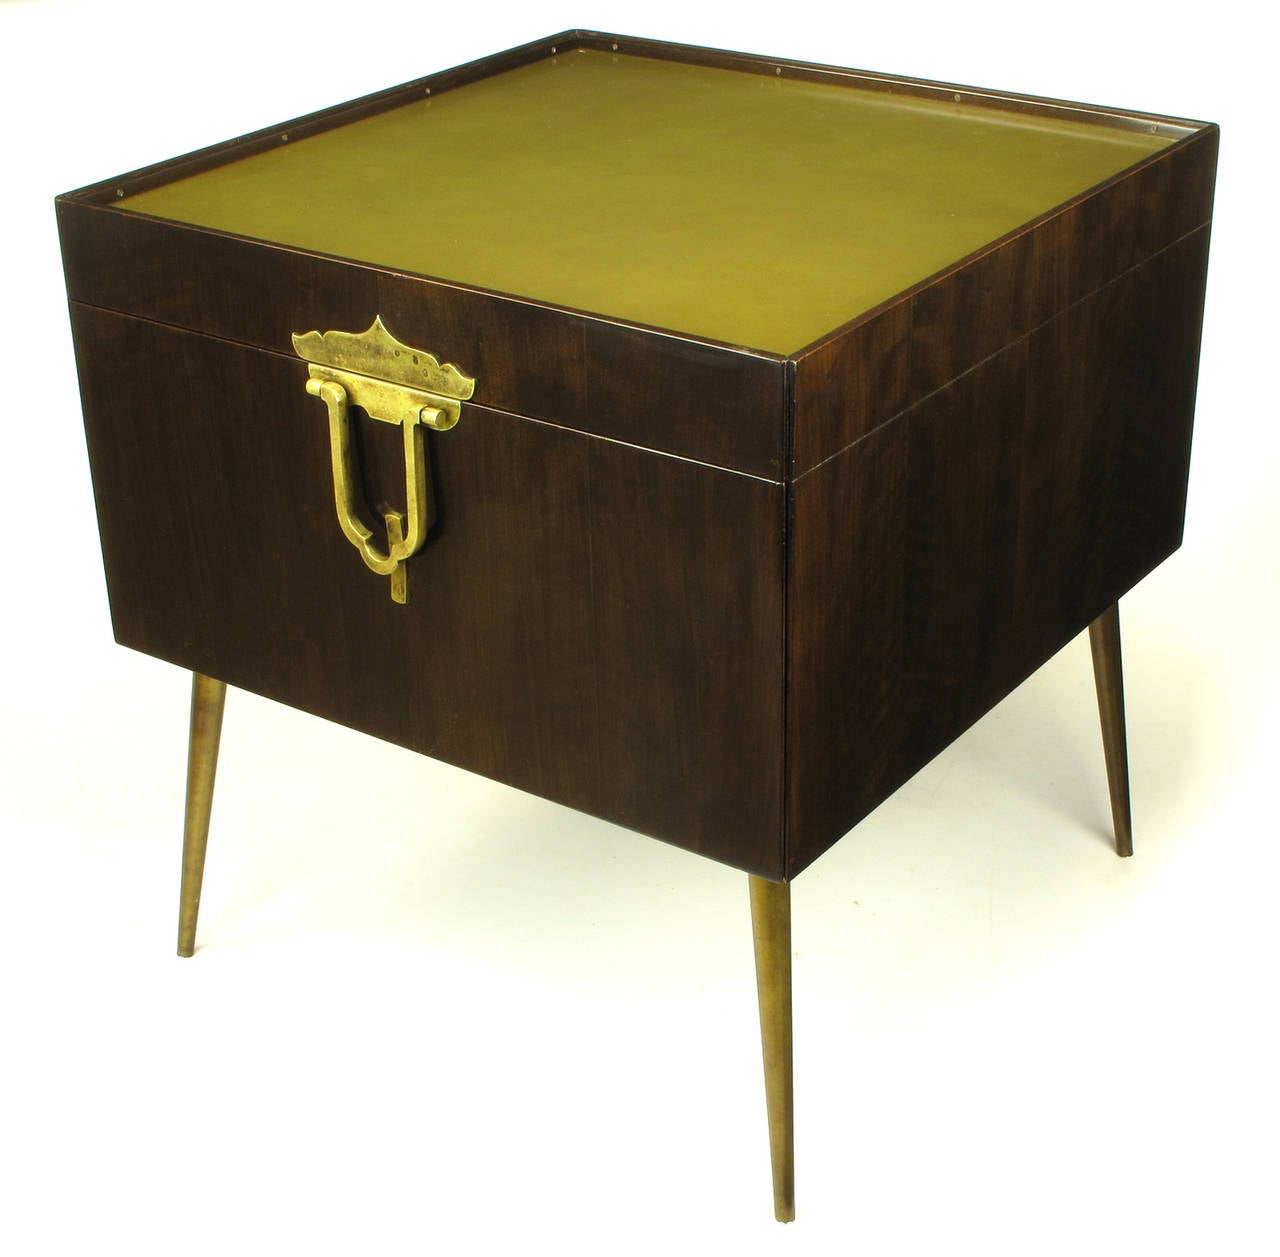 Often misattributed to Monteverdi Young, this bar cabinet constructed of walnut woods, solid brass, and anodized aluminum is actually designed by Bert England for his John Widdicomb Furniture Orientation Group. A single door is accessed by a large